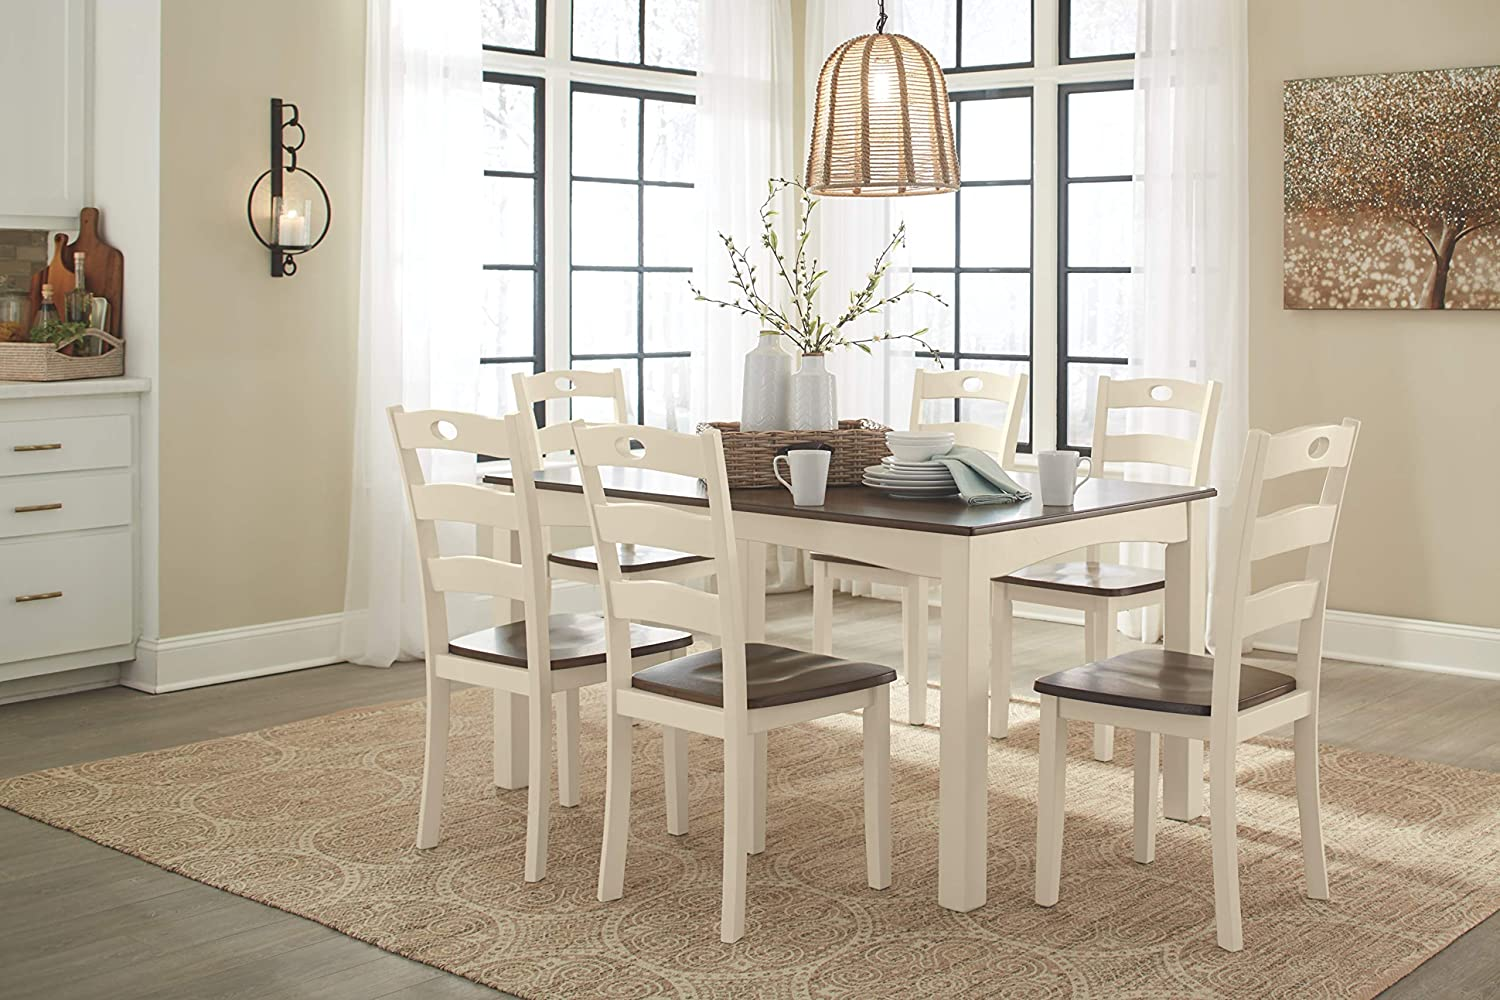 - Brown Bennox Dining Room Table and Chairs with Bench Ashley Furniture Signature Design Set of 6